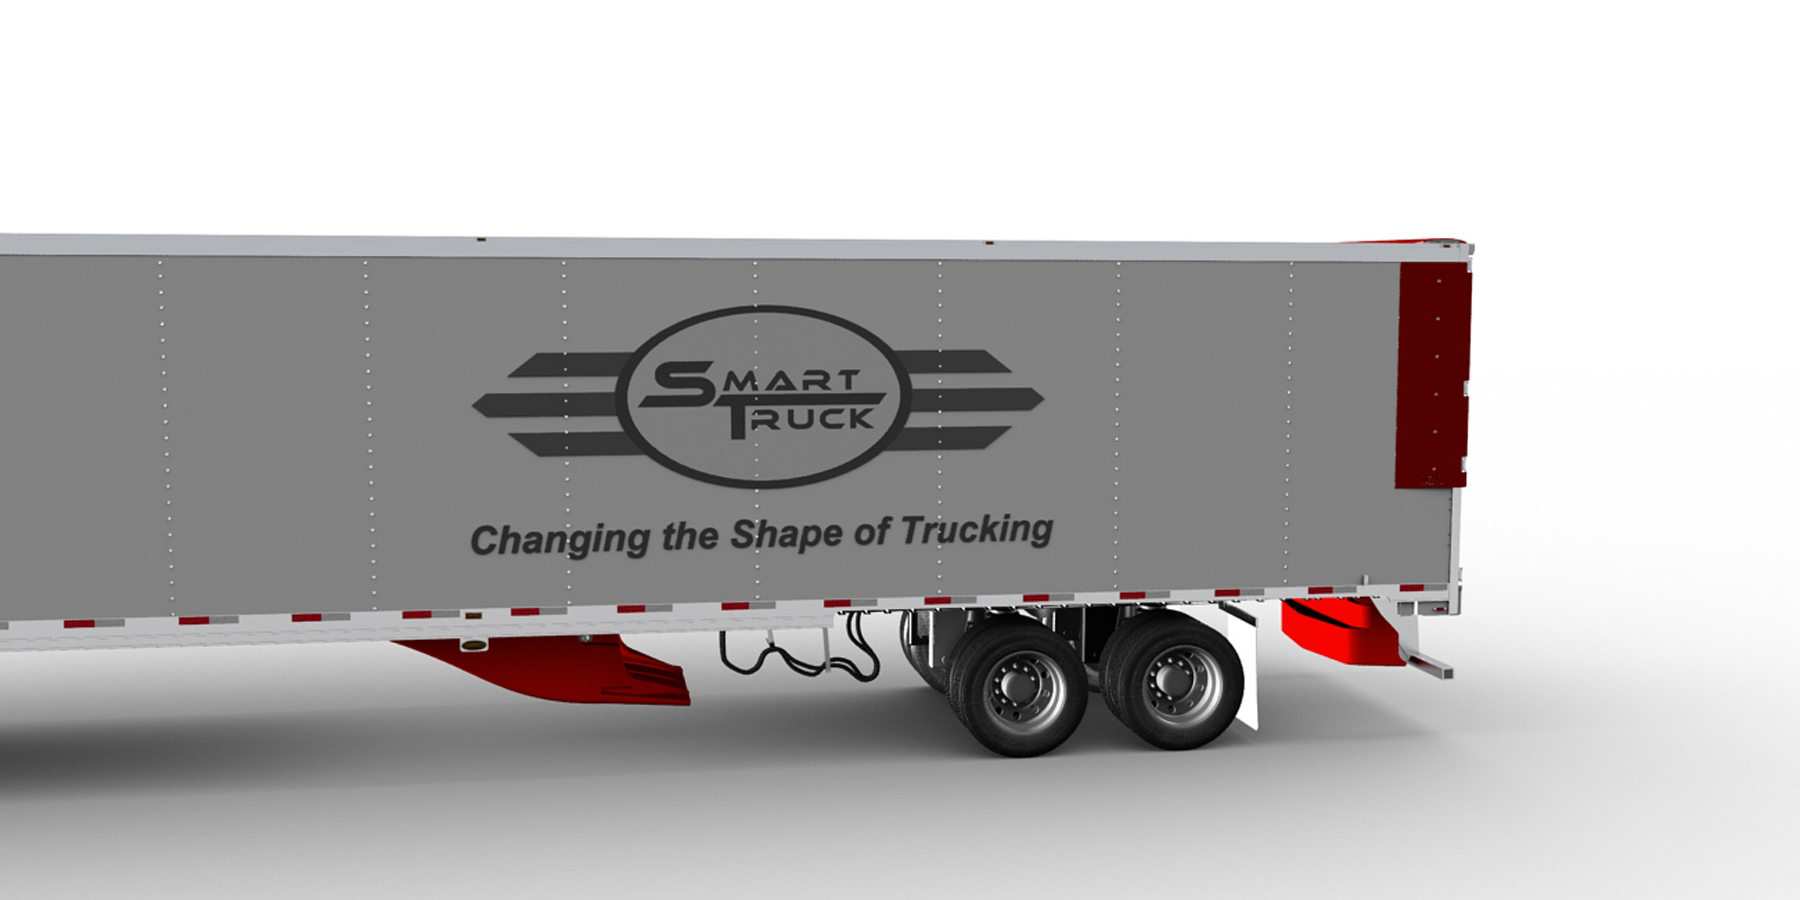 High End Truck Research Paved Way For Smarttruck